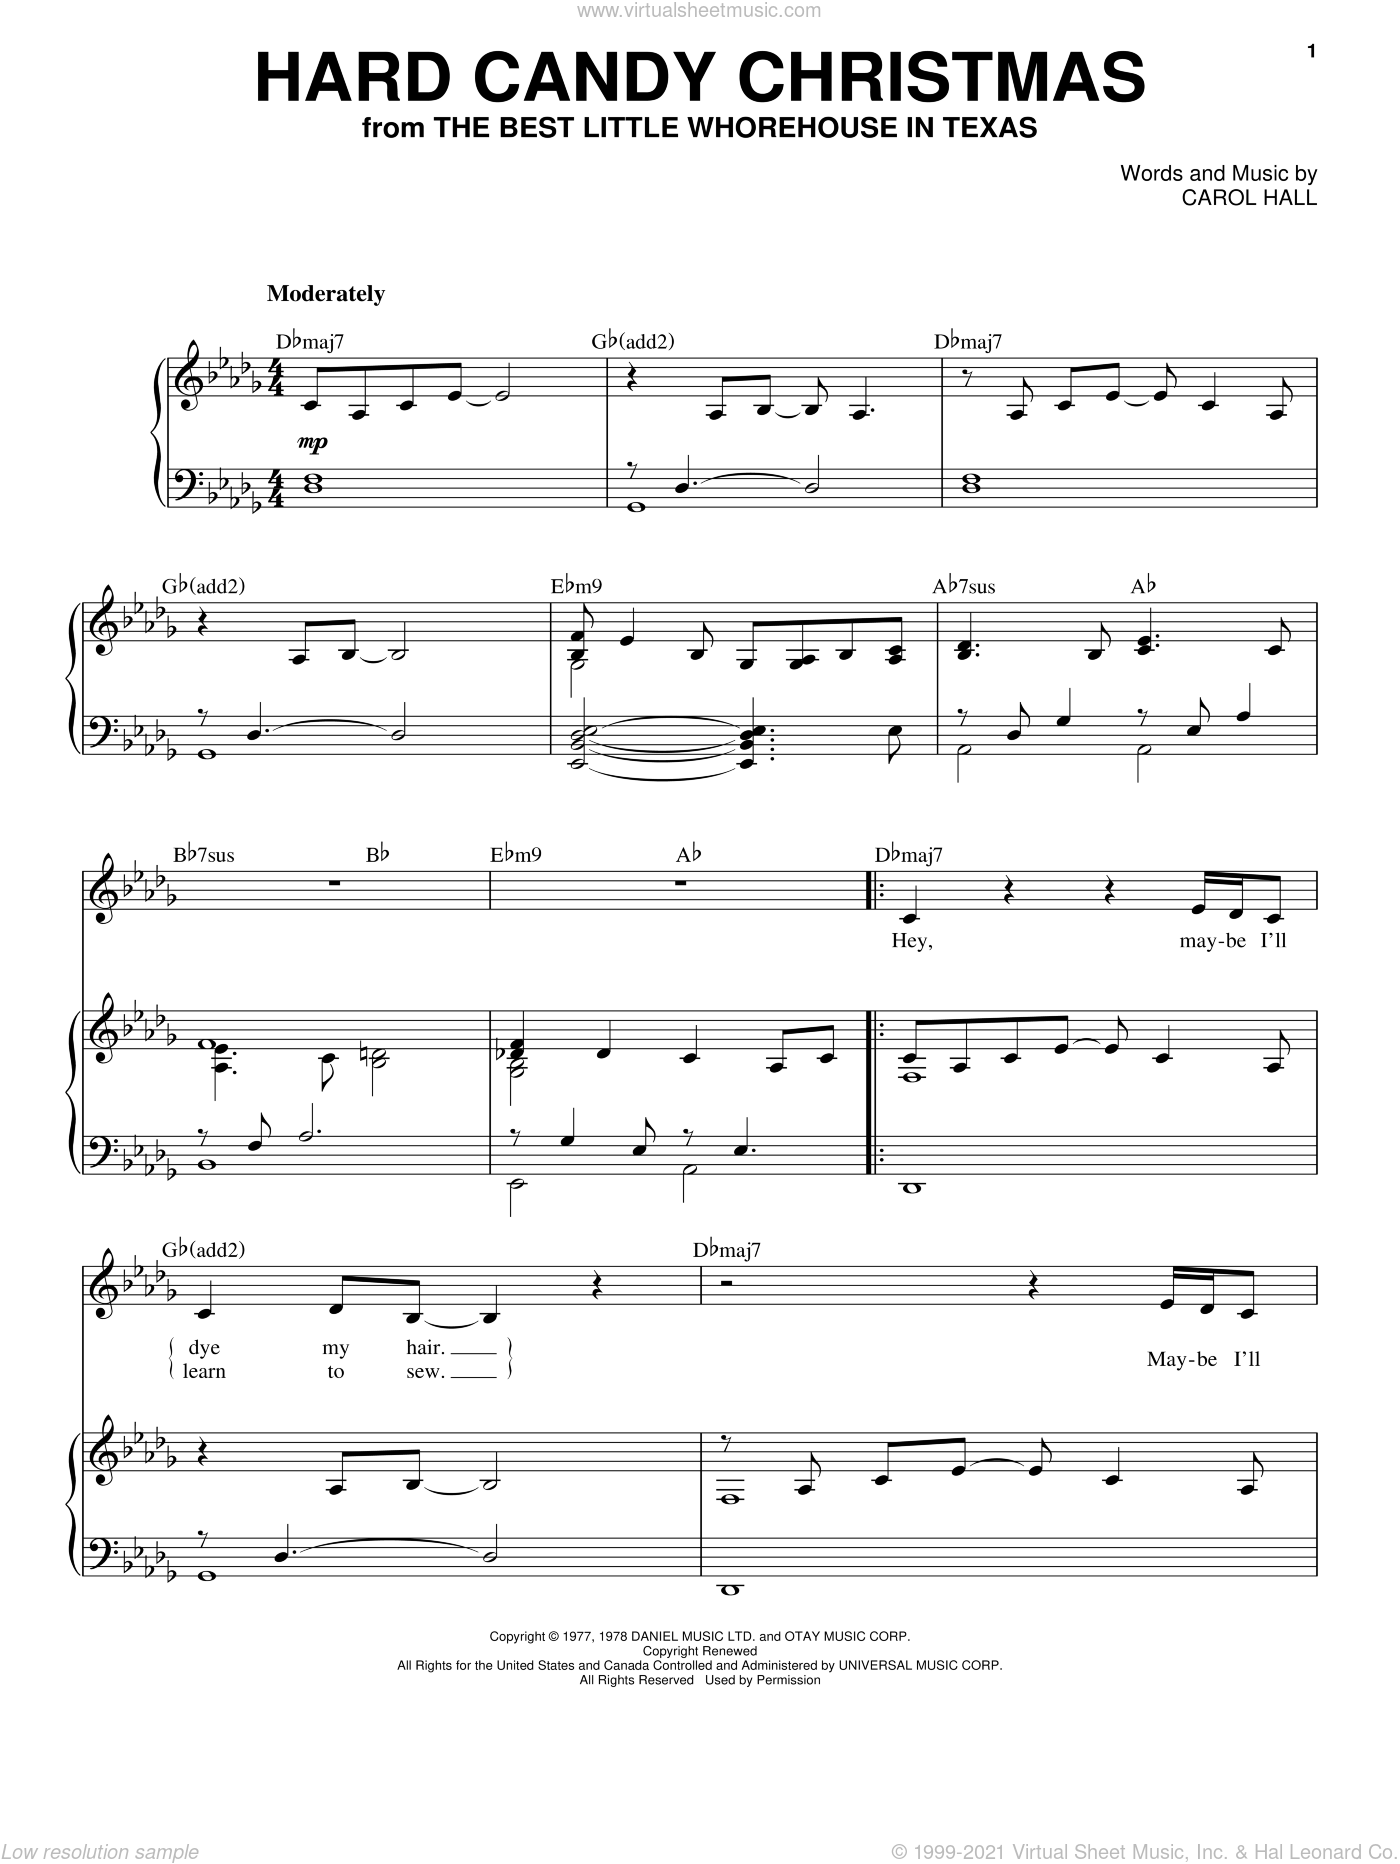 Hard Candy Christmas sheet music for voice and piano by Dolly Parton and Carol Hall, intermediate skill level